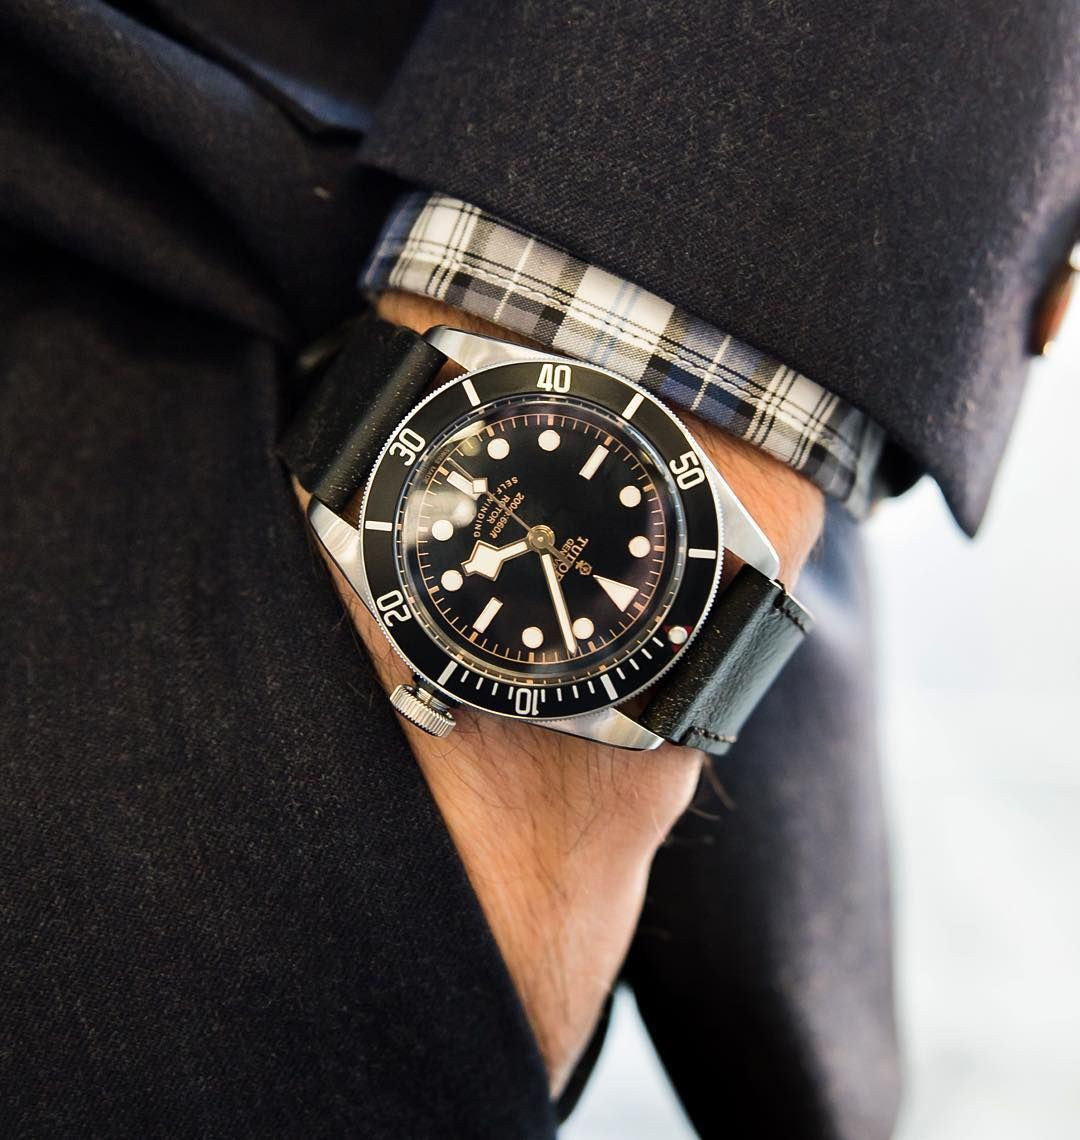 The tudorwatch black bay better than ever in black on black andrewleegoble watchwednesday for Watches better than rolex